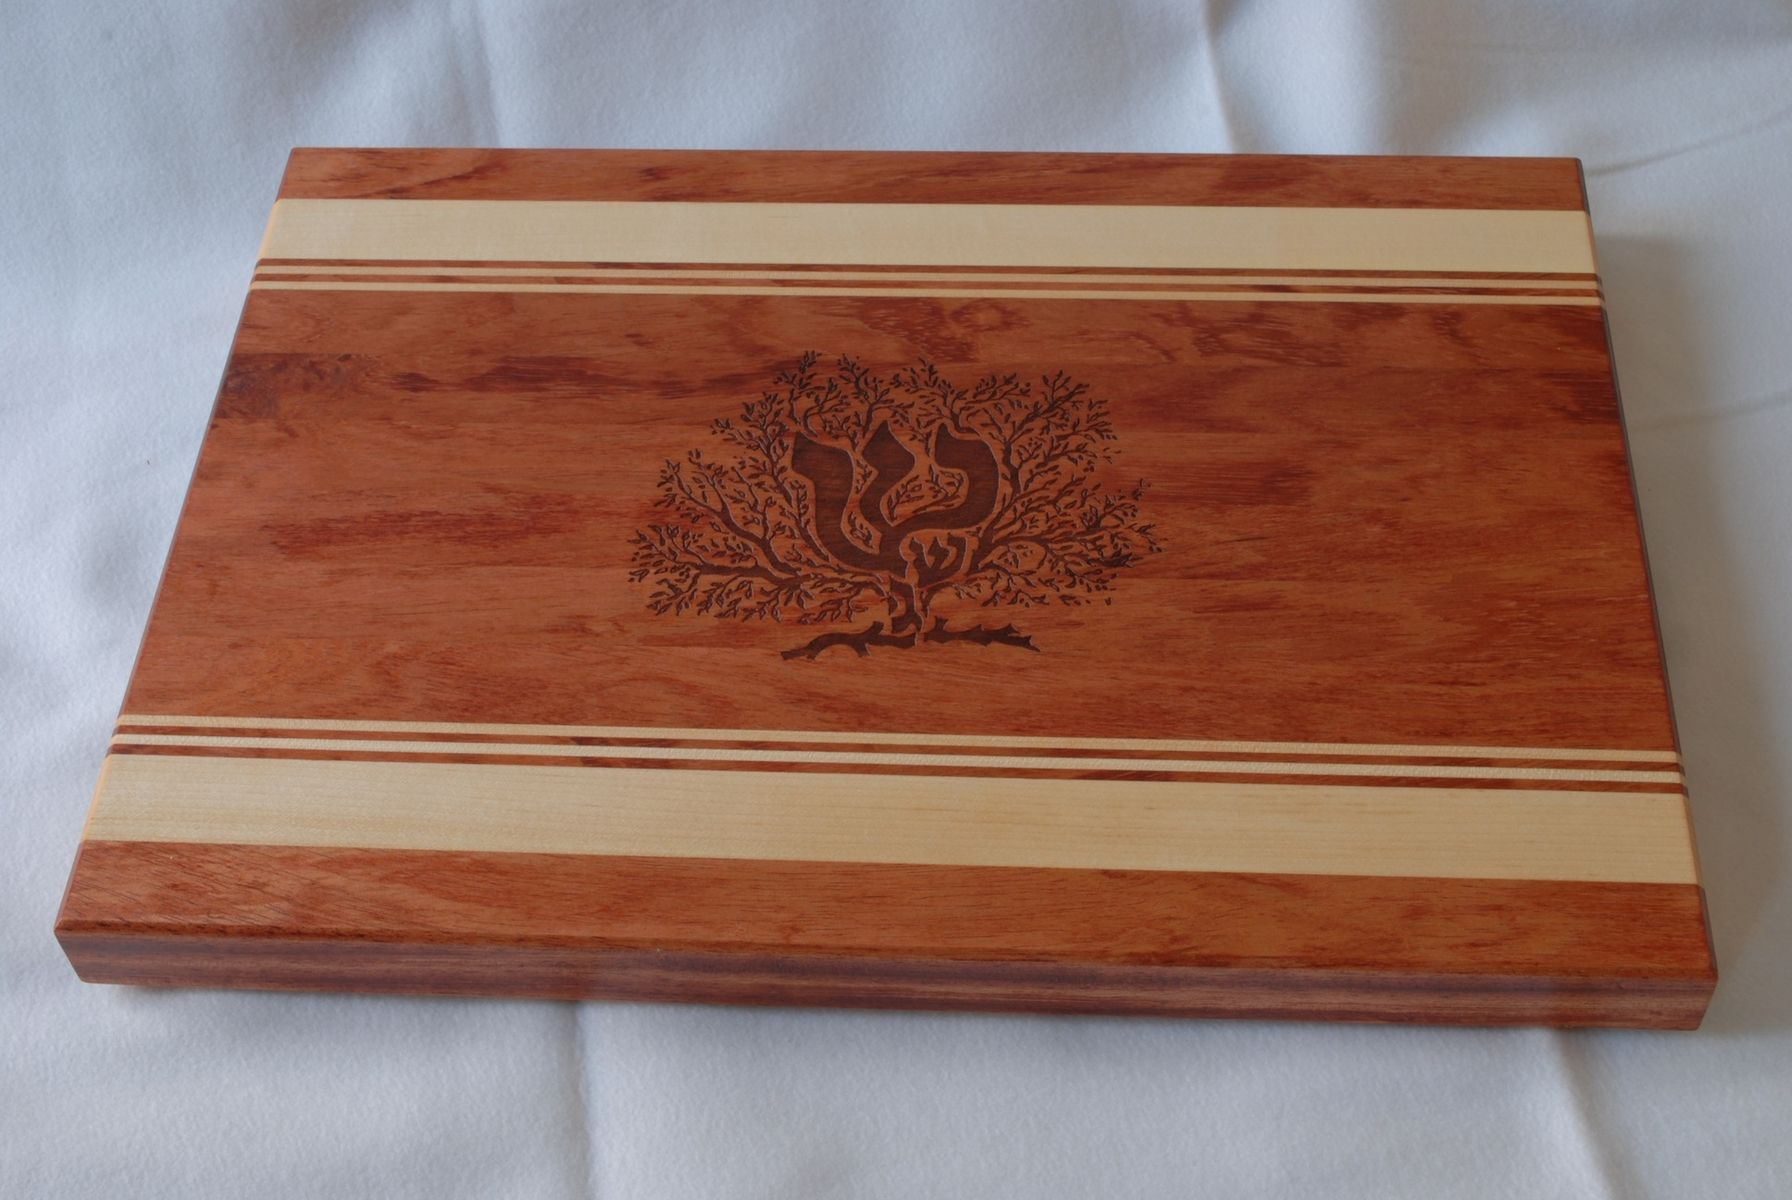 hand crafted engraved wood cutting board personalized with unique image by clark wood. Black Bedroom Furniture Sets. Home Design Ideas